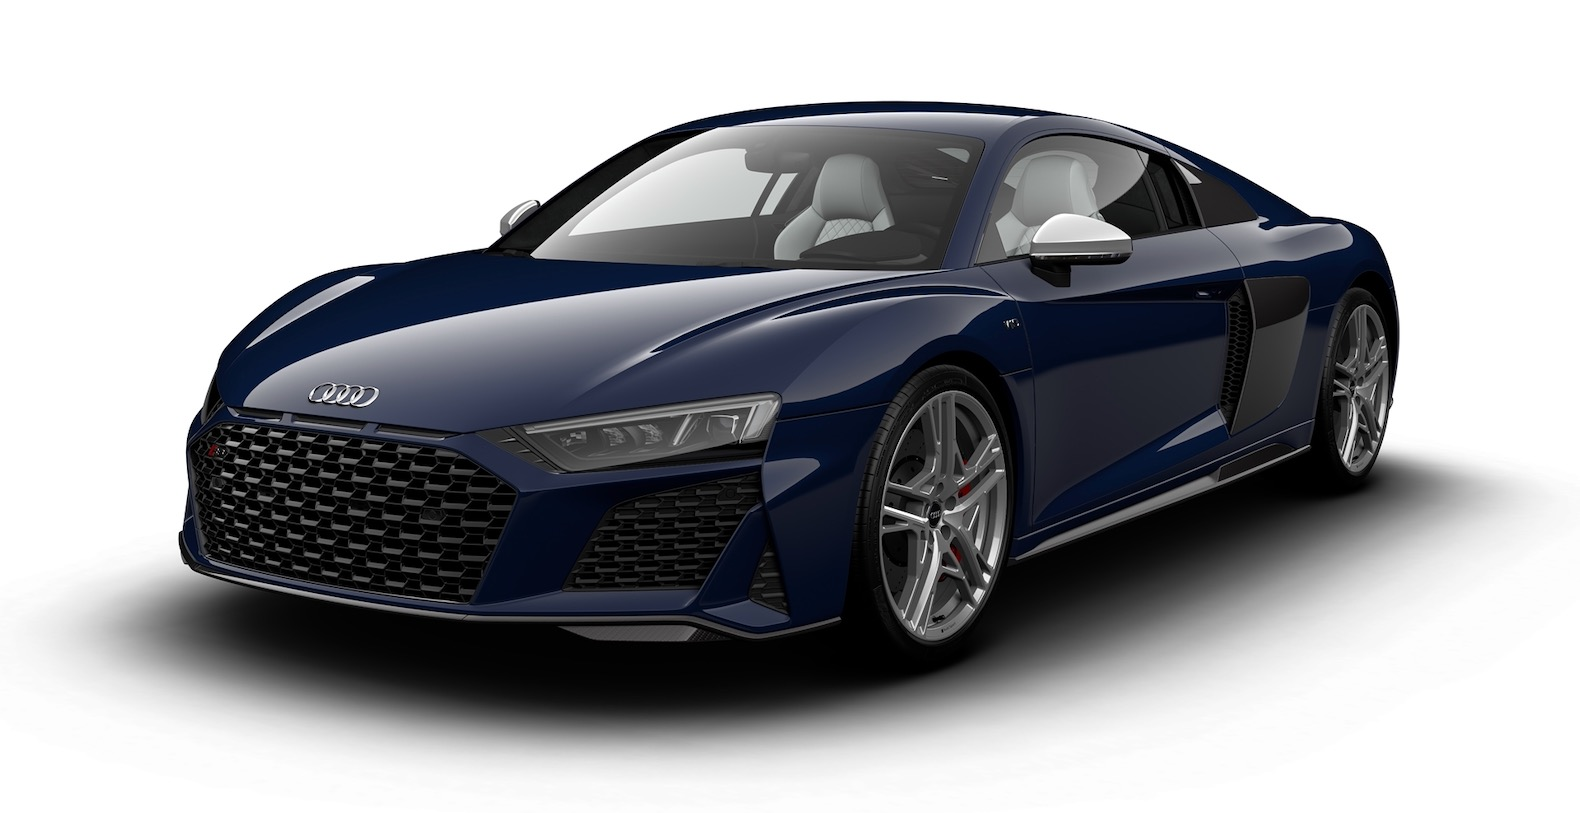 2020 audi r8 v10 limited edition bids farewell to the base